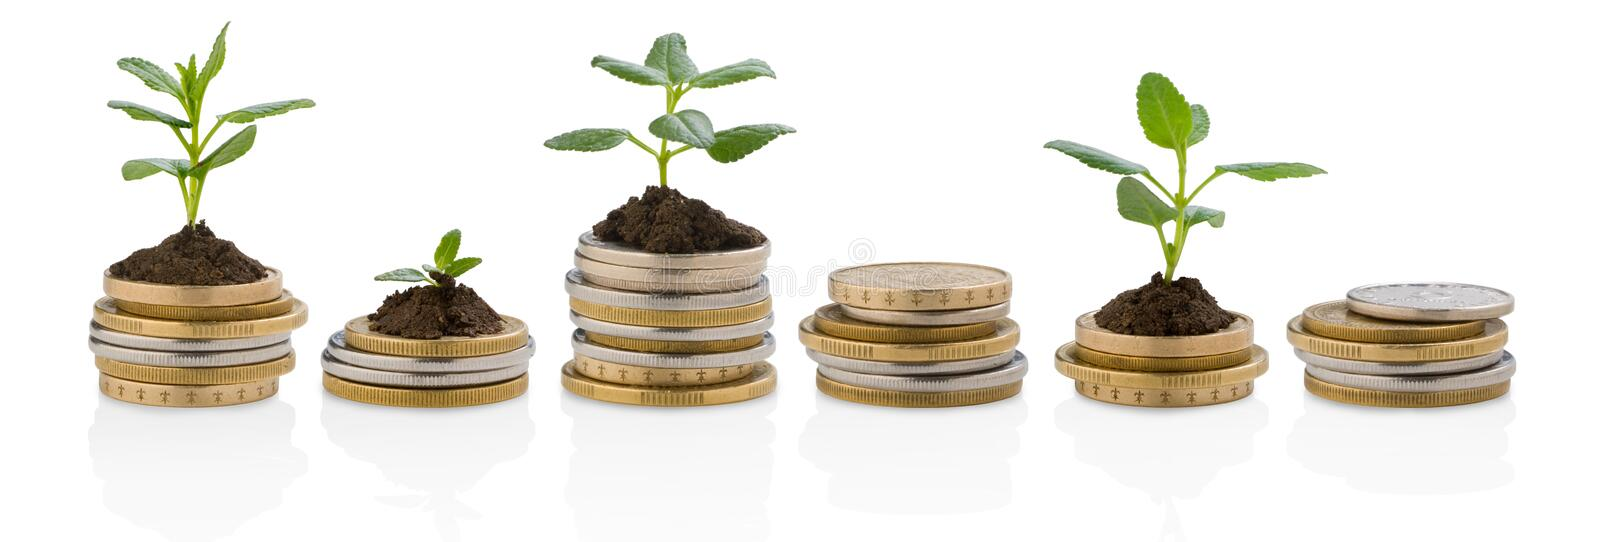 Investments stock images